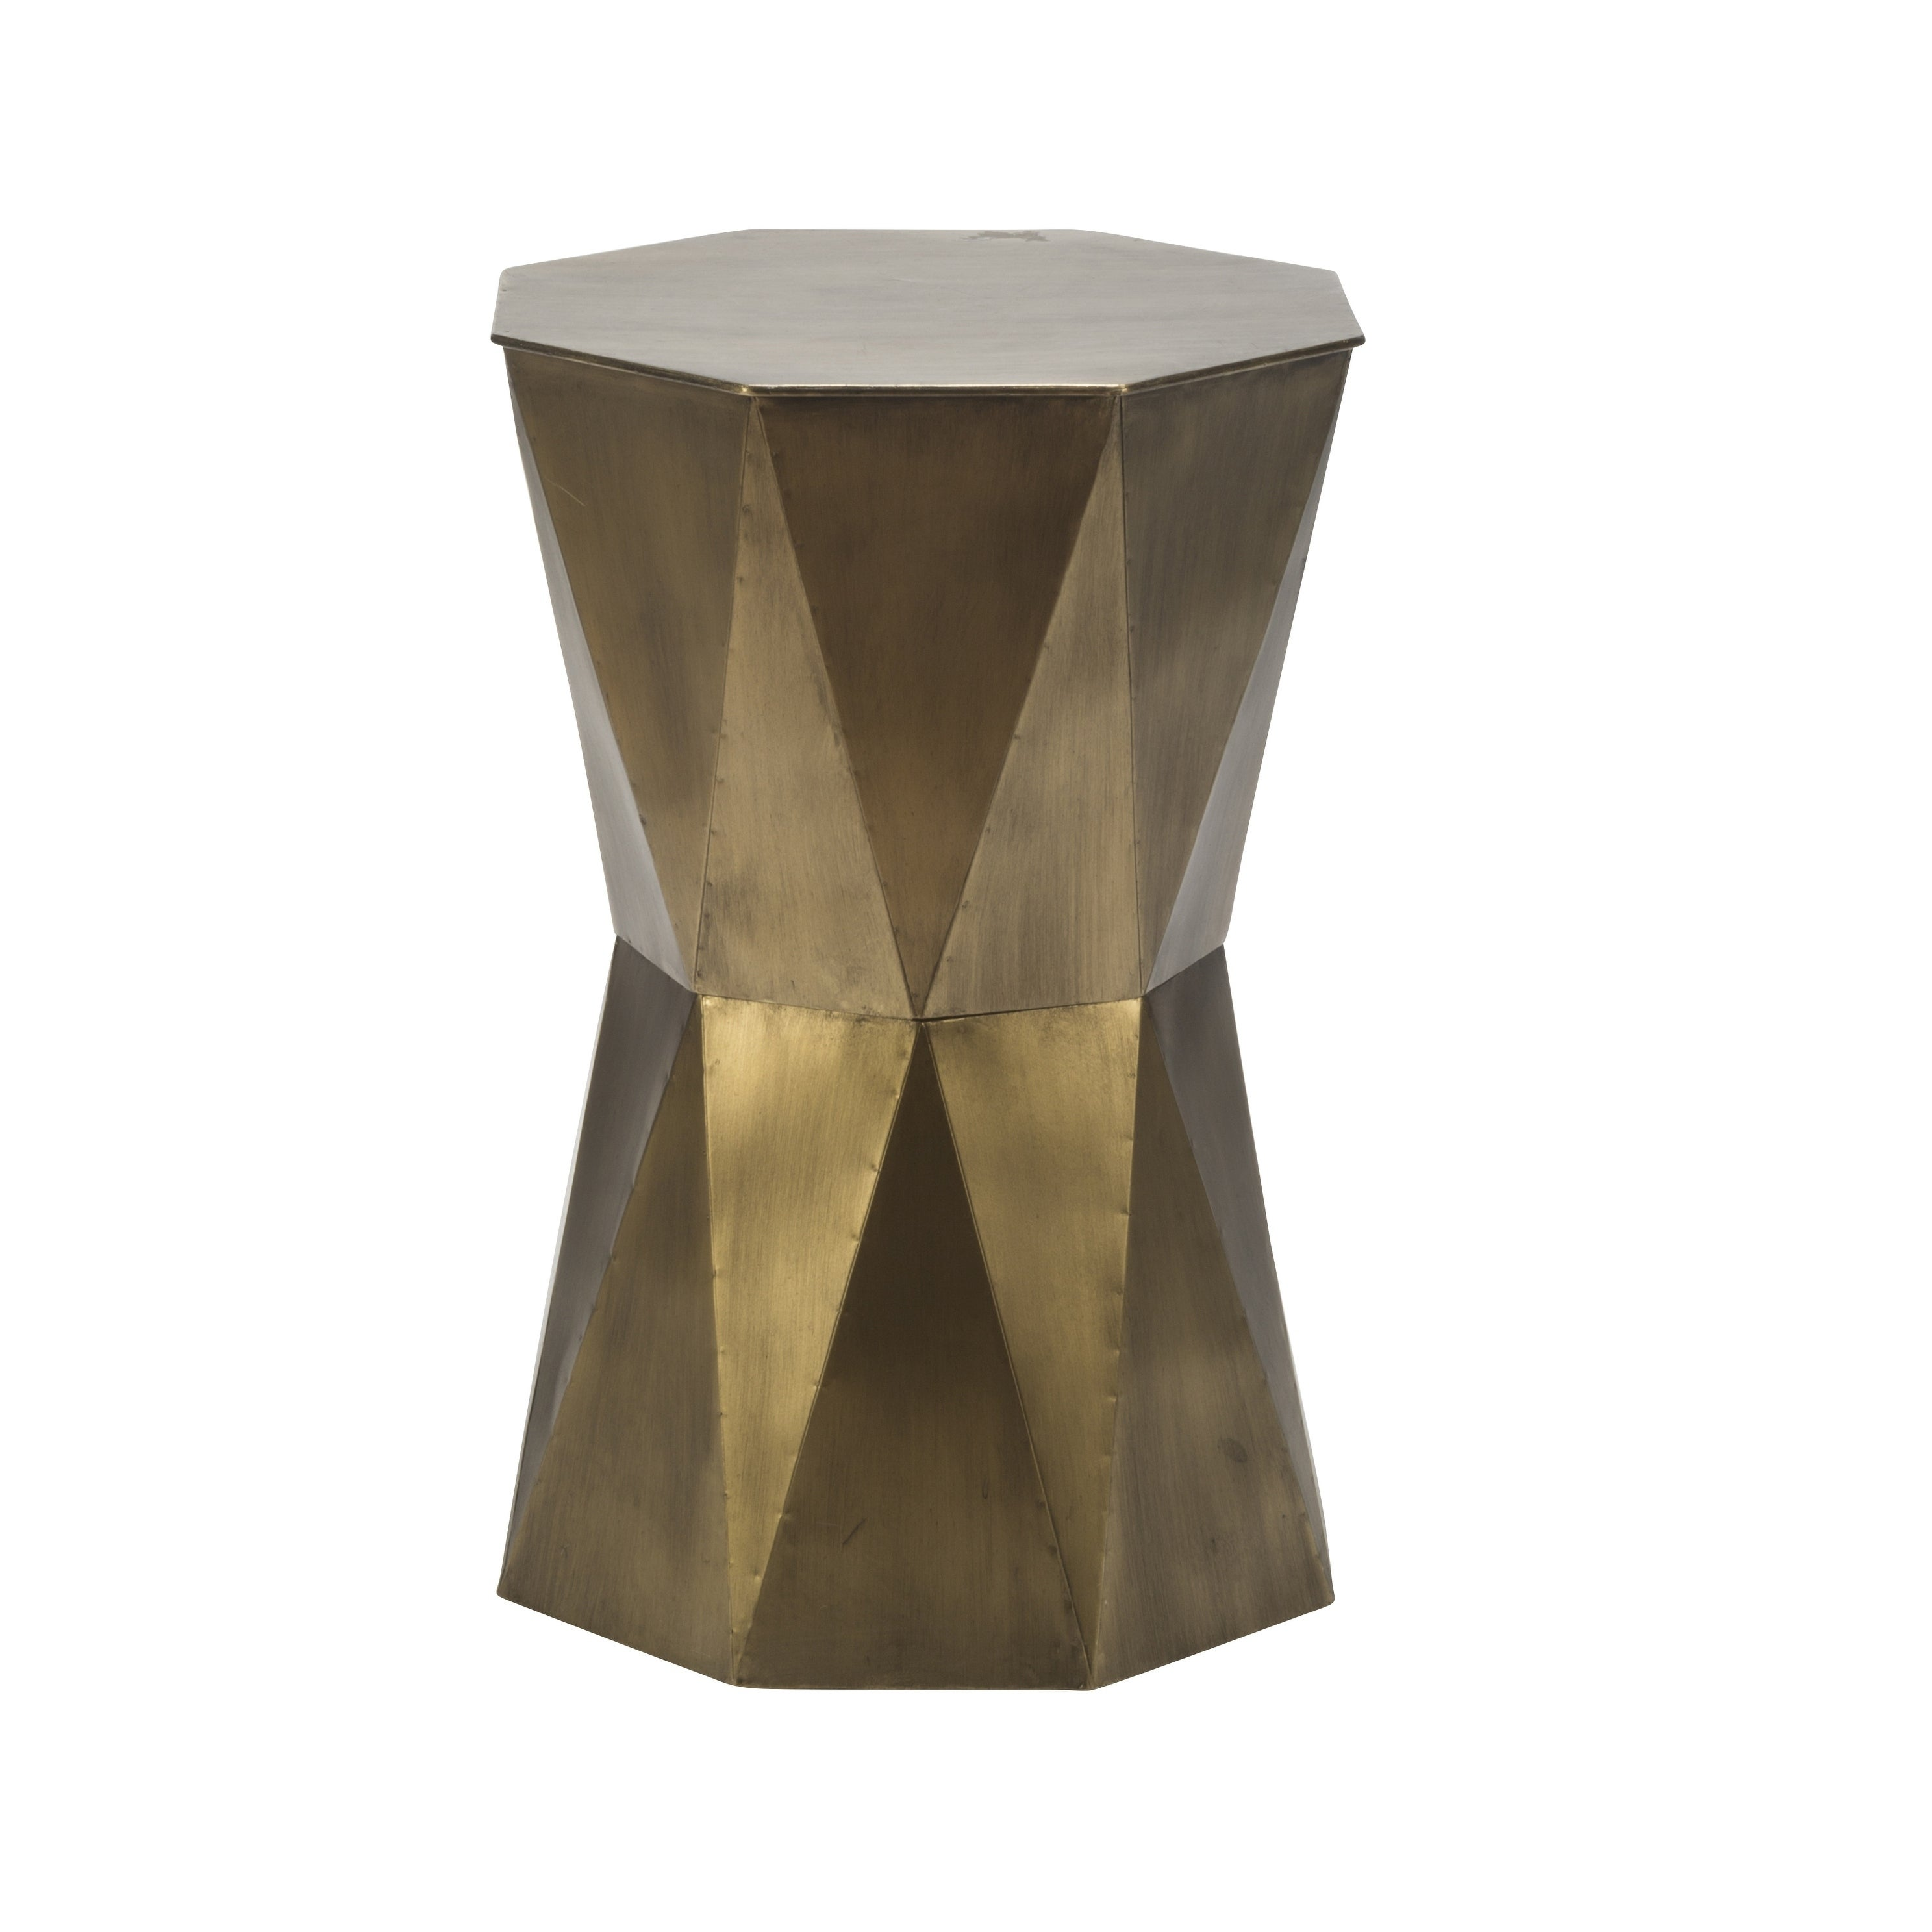 - Shop Large Geometric Accent Table - Overstock - 21613374